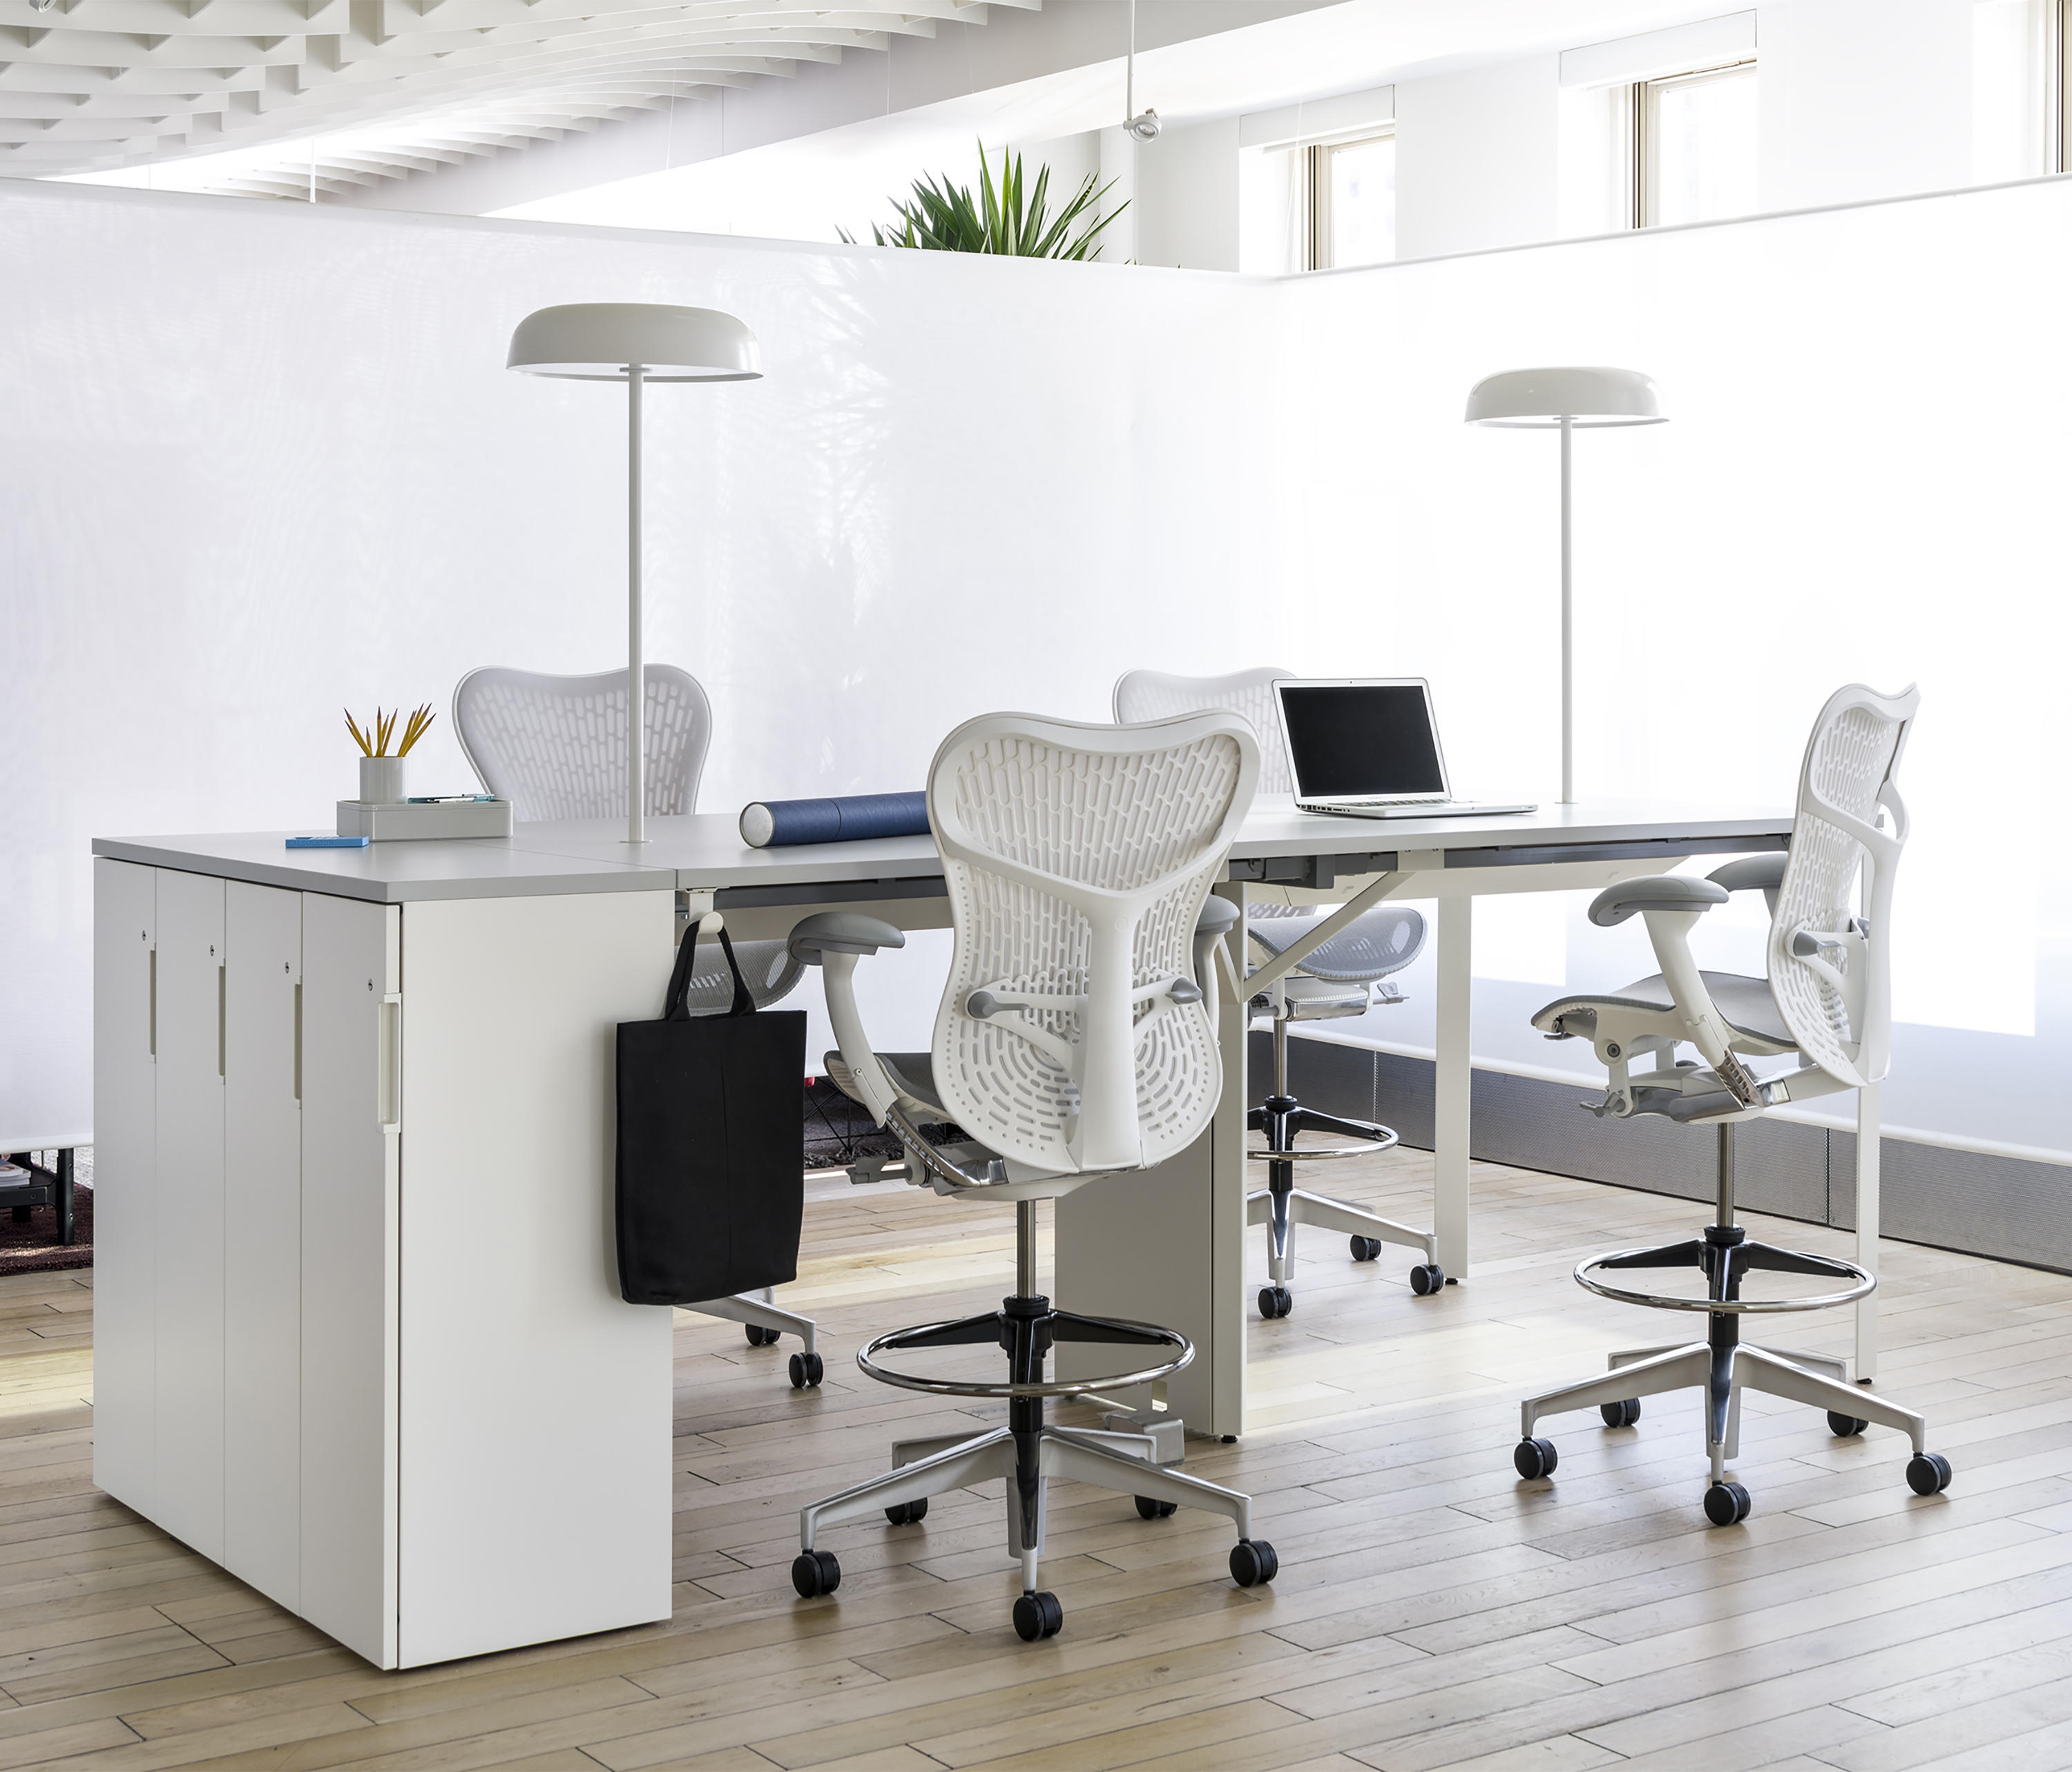 MIRRA 2 CHAIR Management chairs from Herman Miller